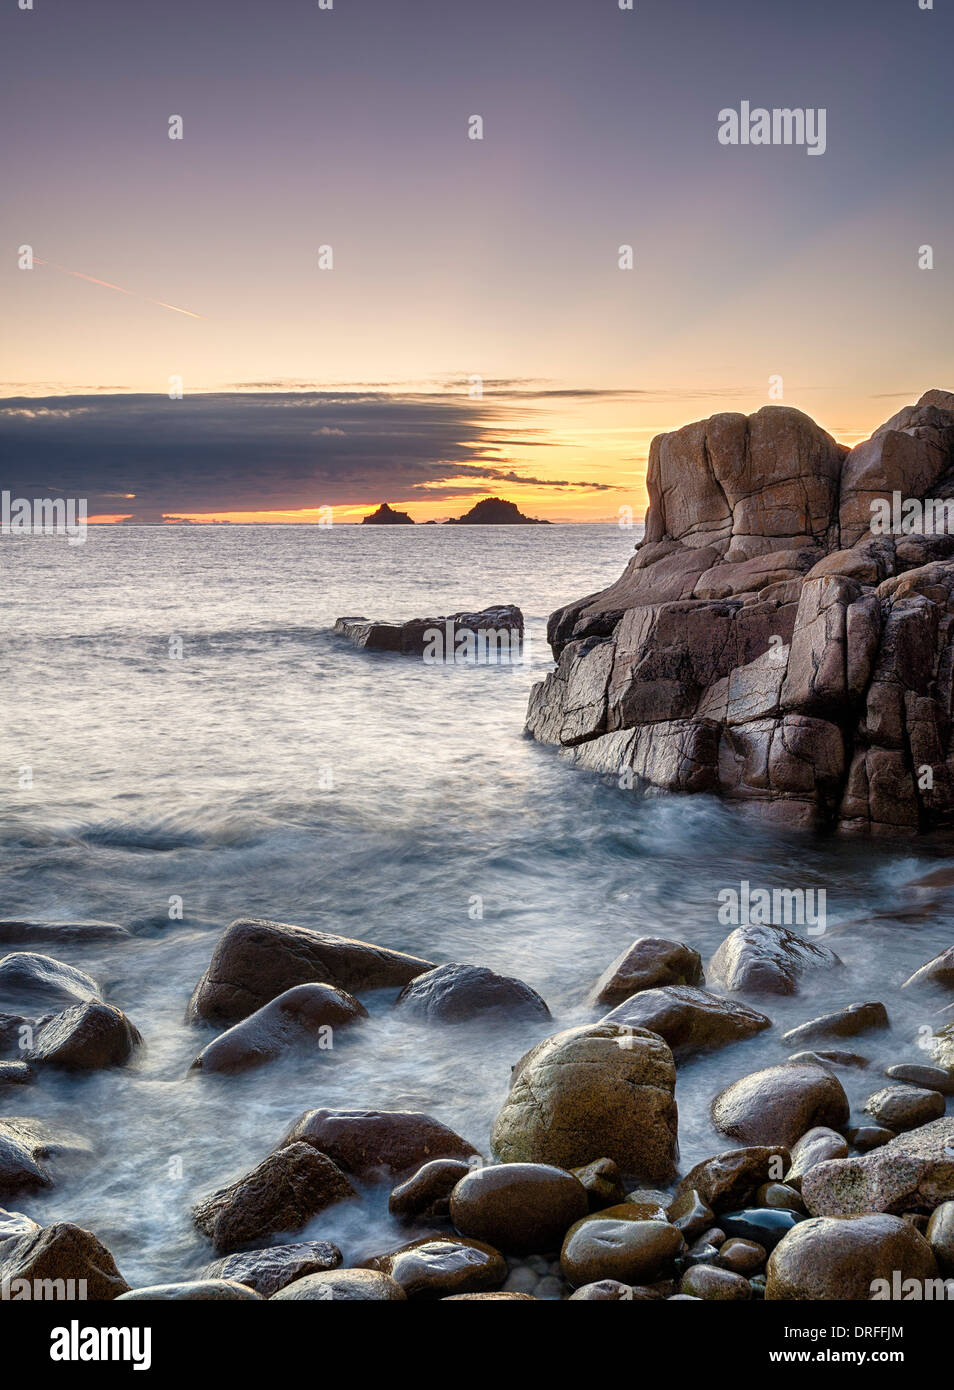 The beach at Cot Valley near St Just in Cornwall also known as Porth Nanven cove - Stock Image